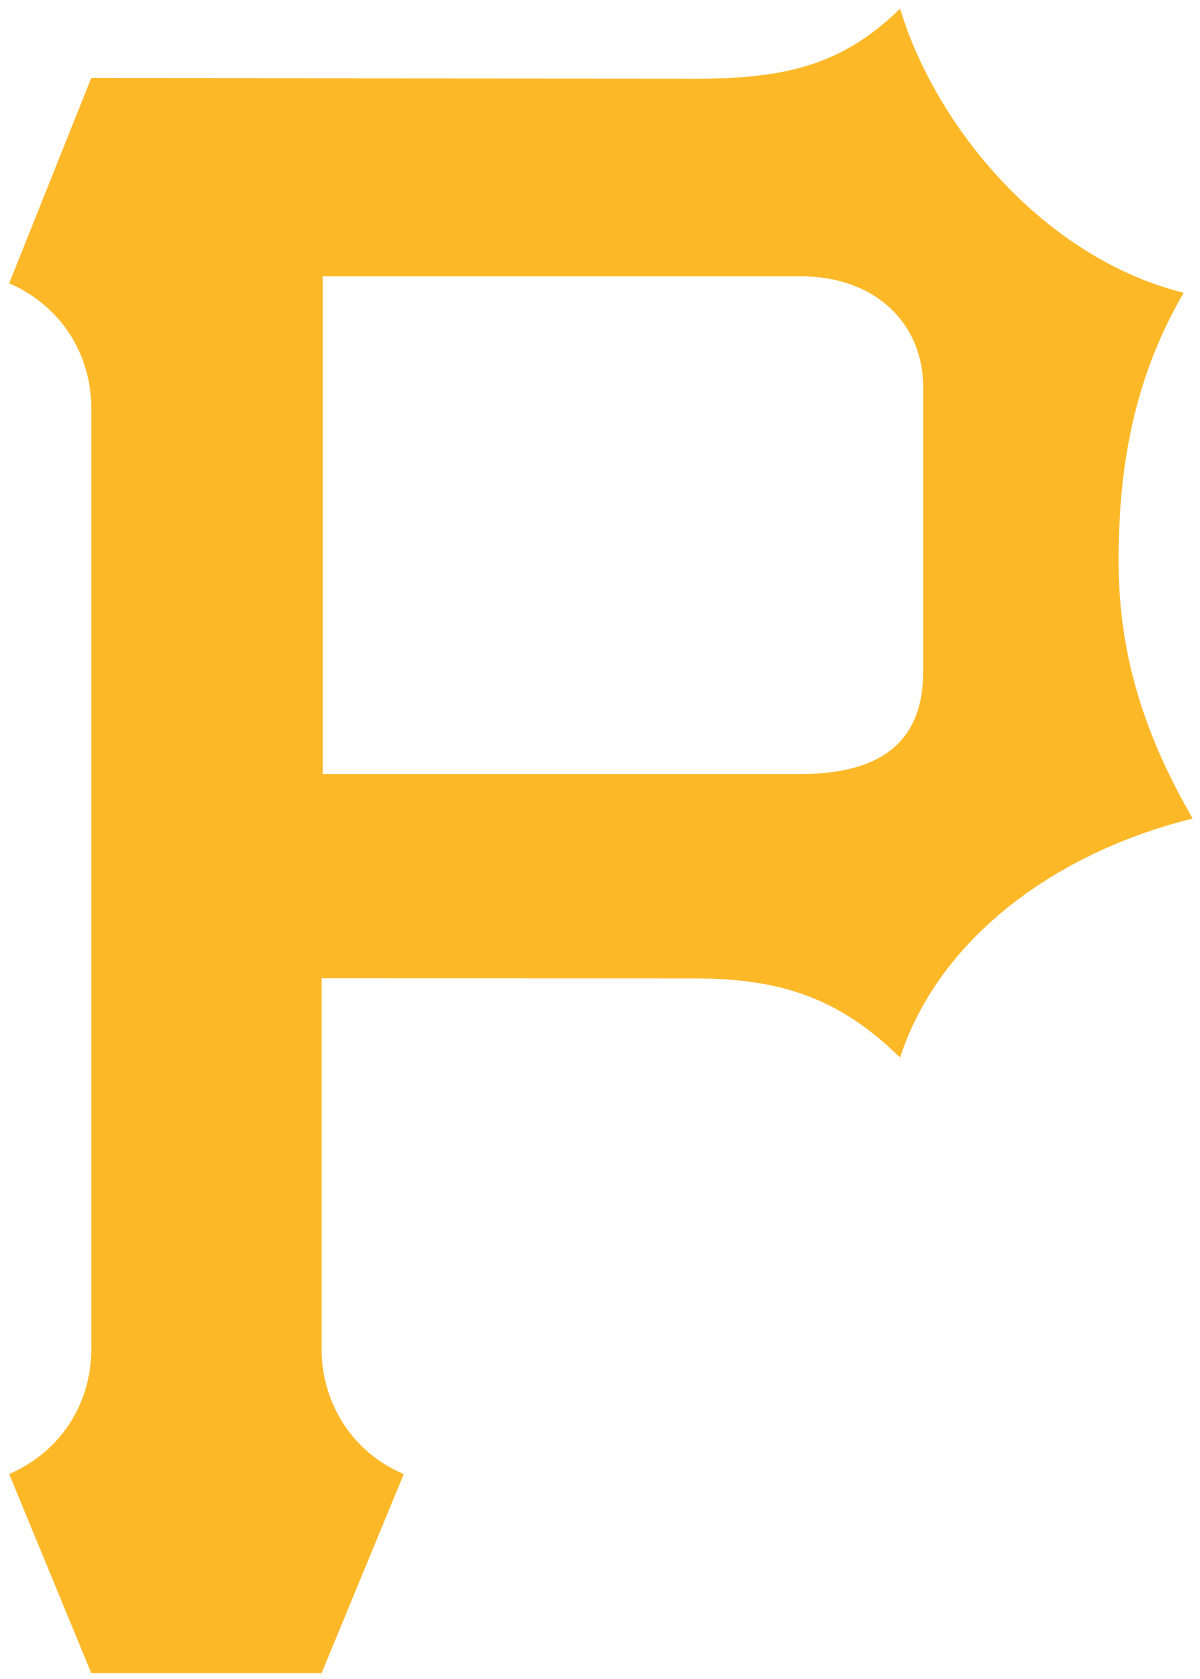 Clipart of pittsburgh pirates baseball players picture royalty free stock Pittsburgh Pirates - Wikipedia picture royalty free stock